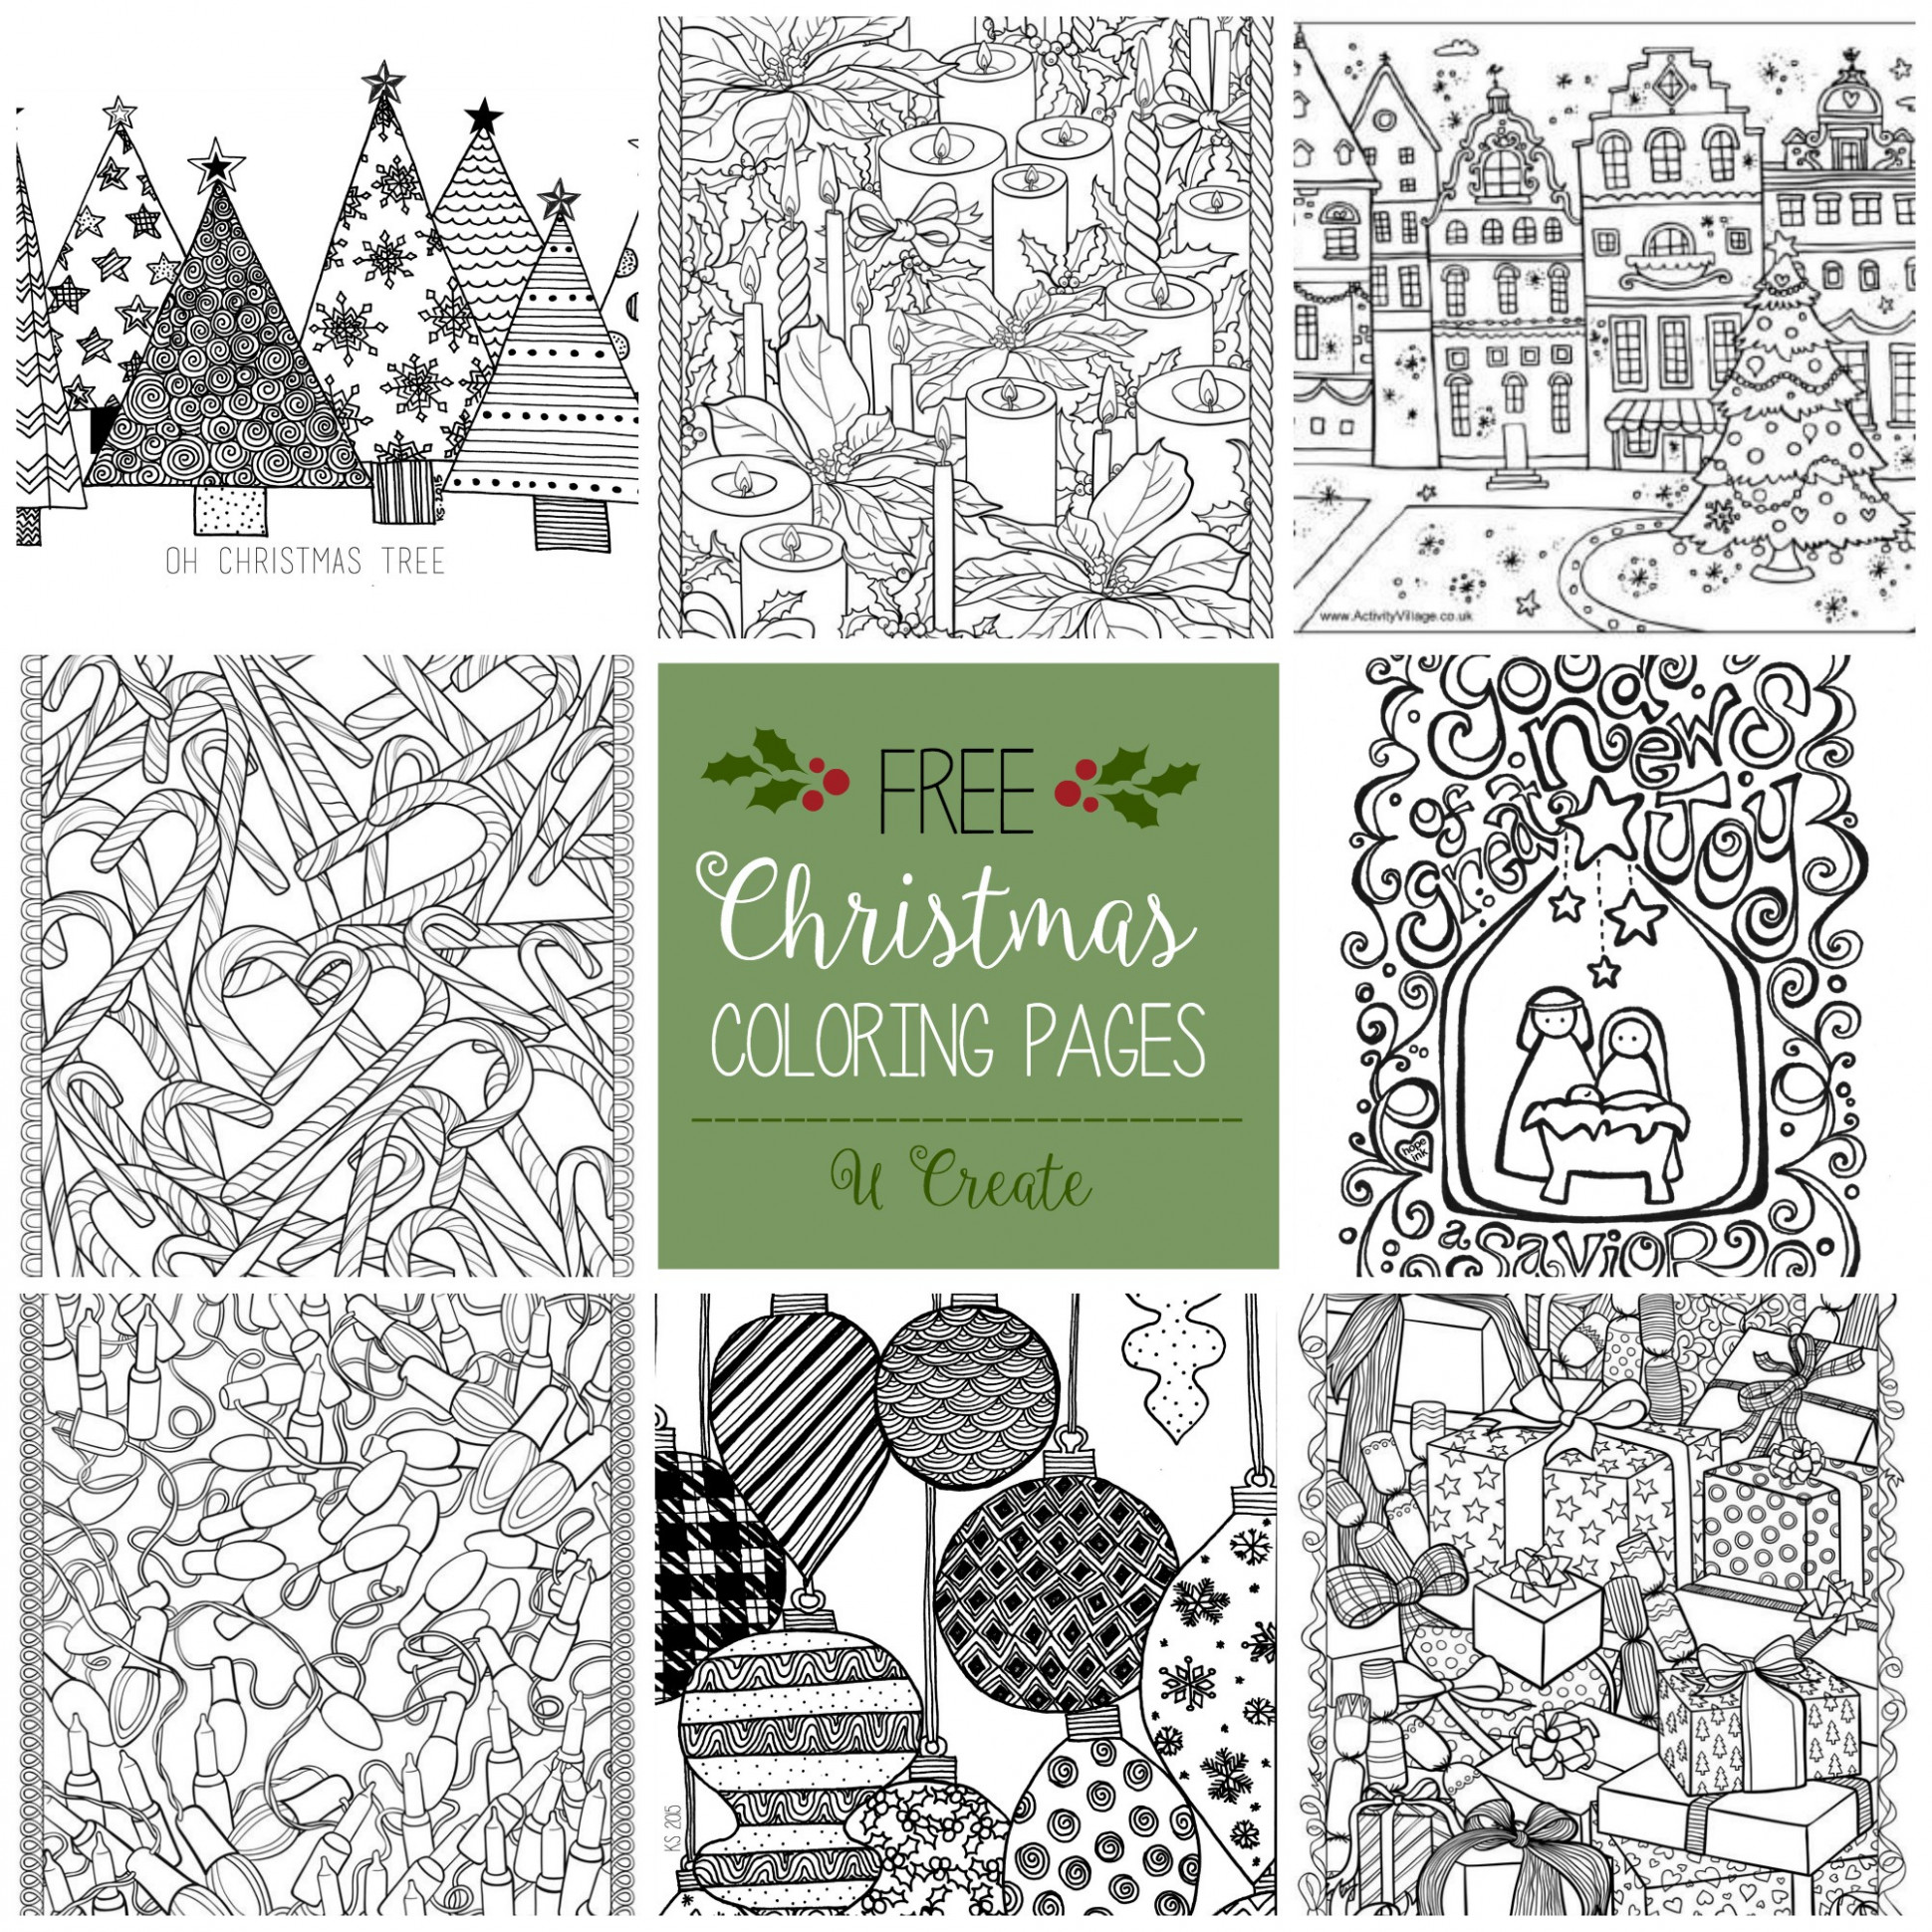 Free Christmas Adult Coloring Pages – U Create – Christmas Coloring Booklet Printable